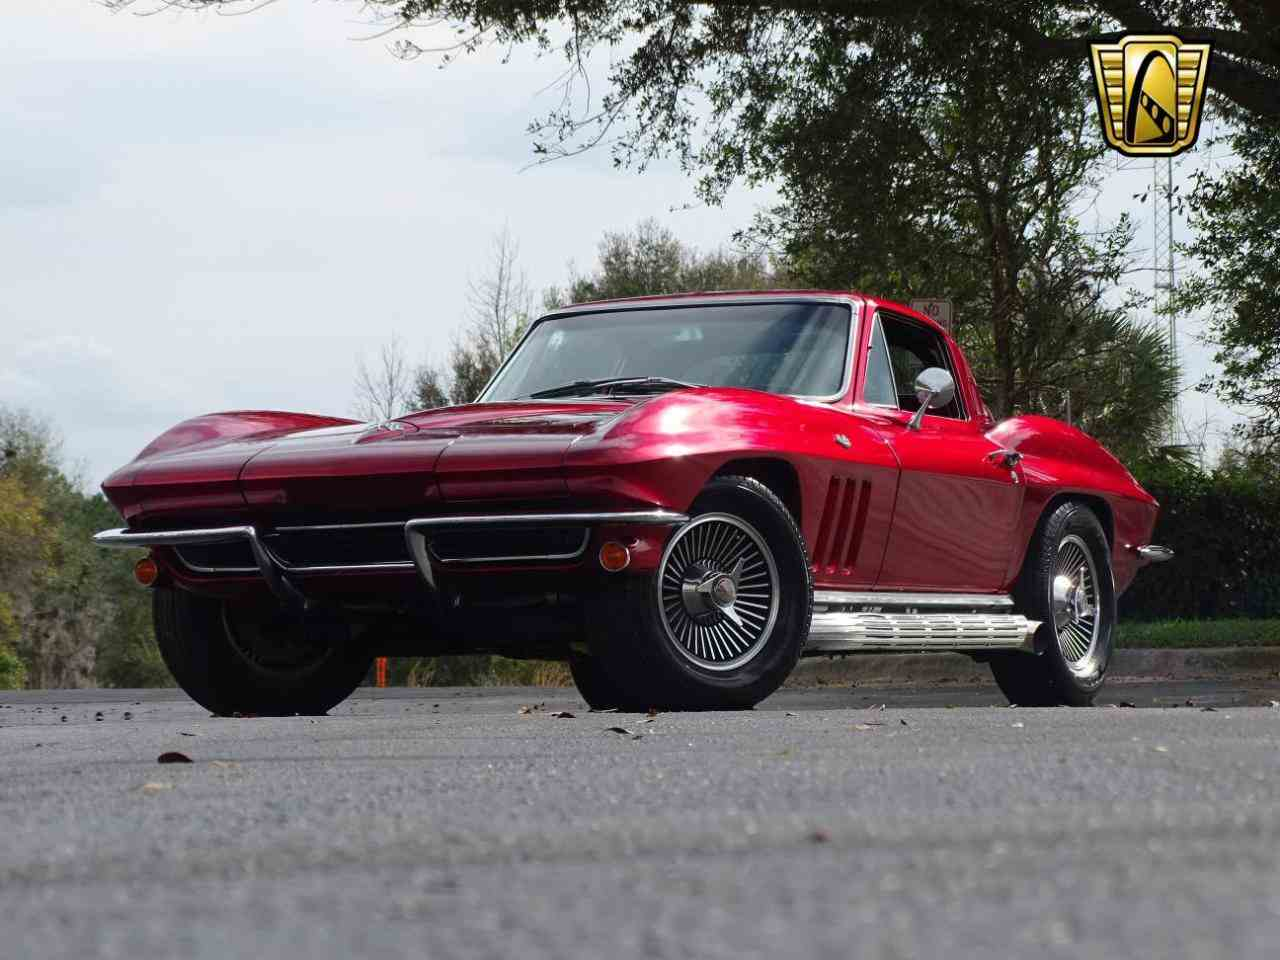 Large Picture of 1965 Corvette located in Florida - $74,000.00 Offered by Gateway Classic Cars - Orlando - KKM4